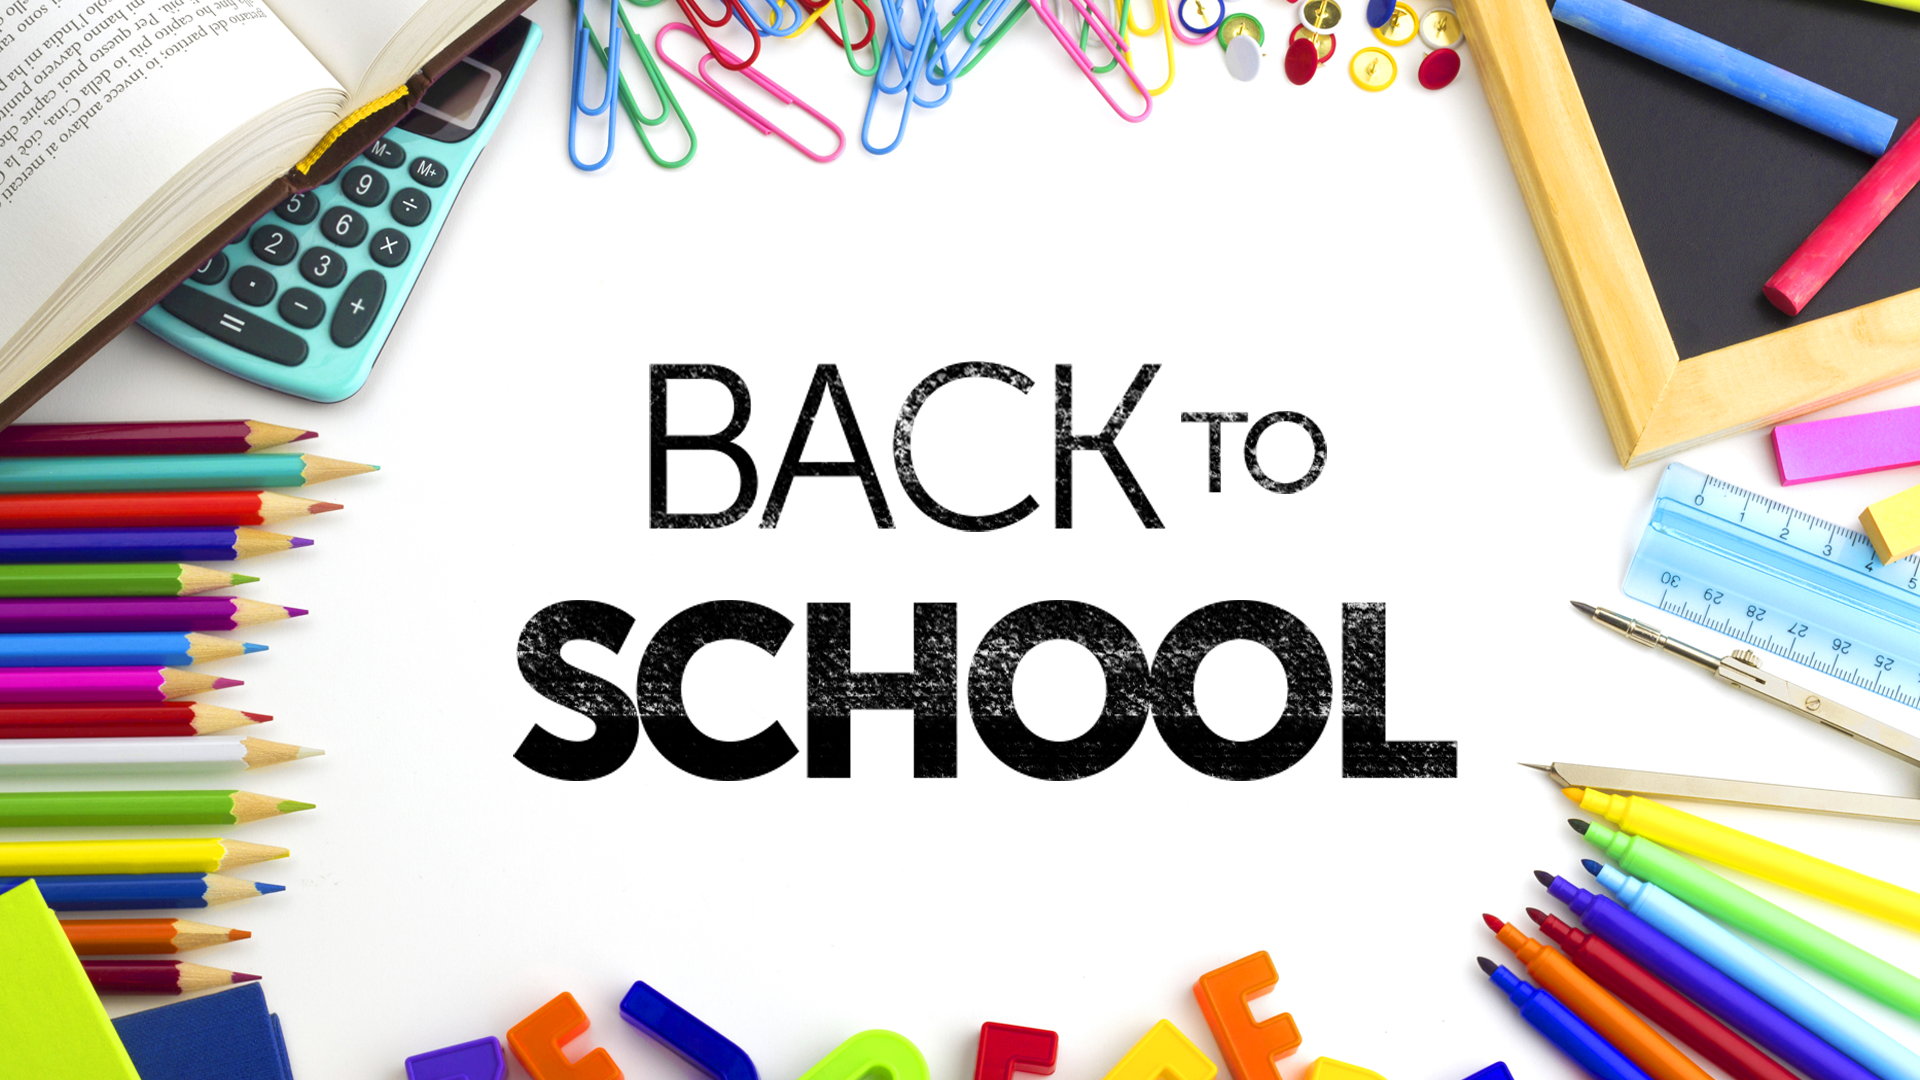 Back to School on Monday, February 22, 2021